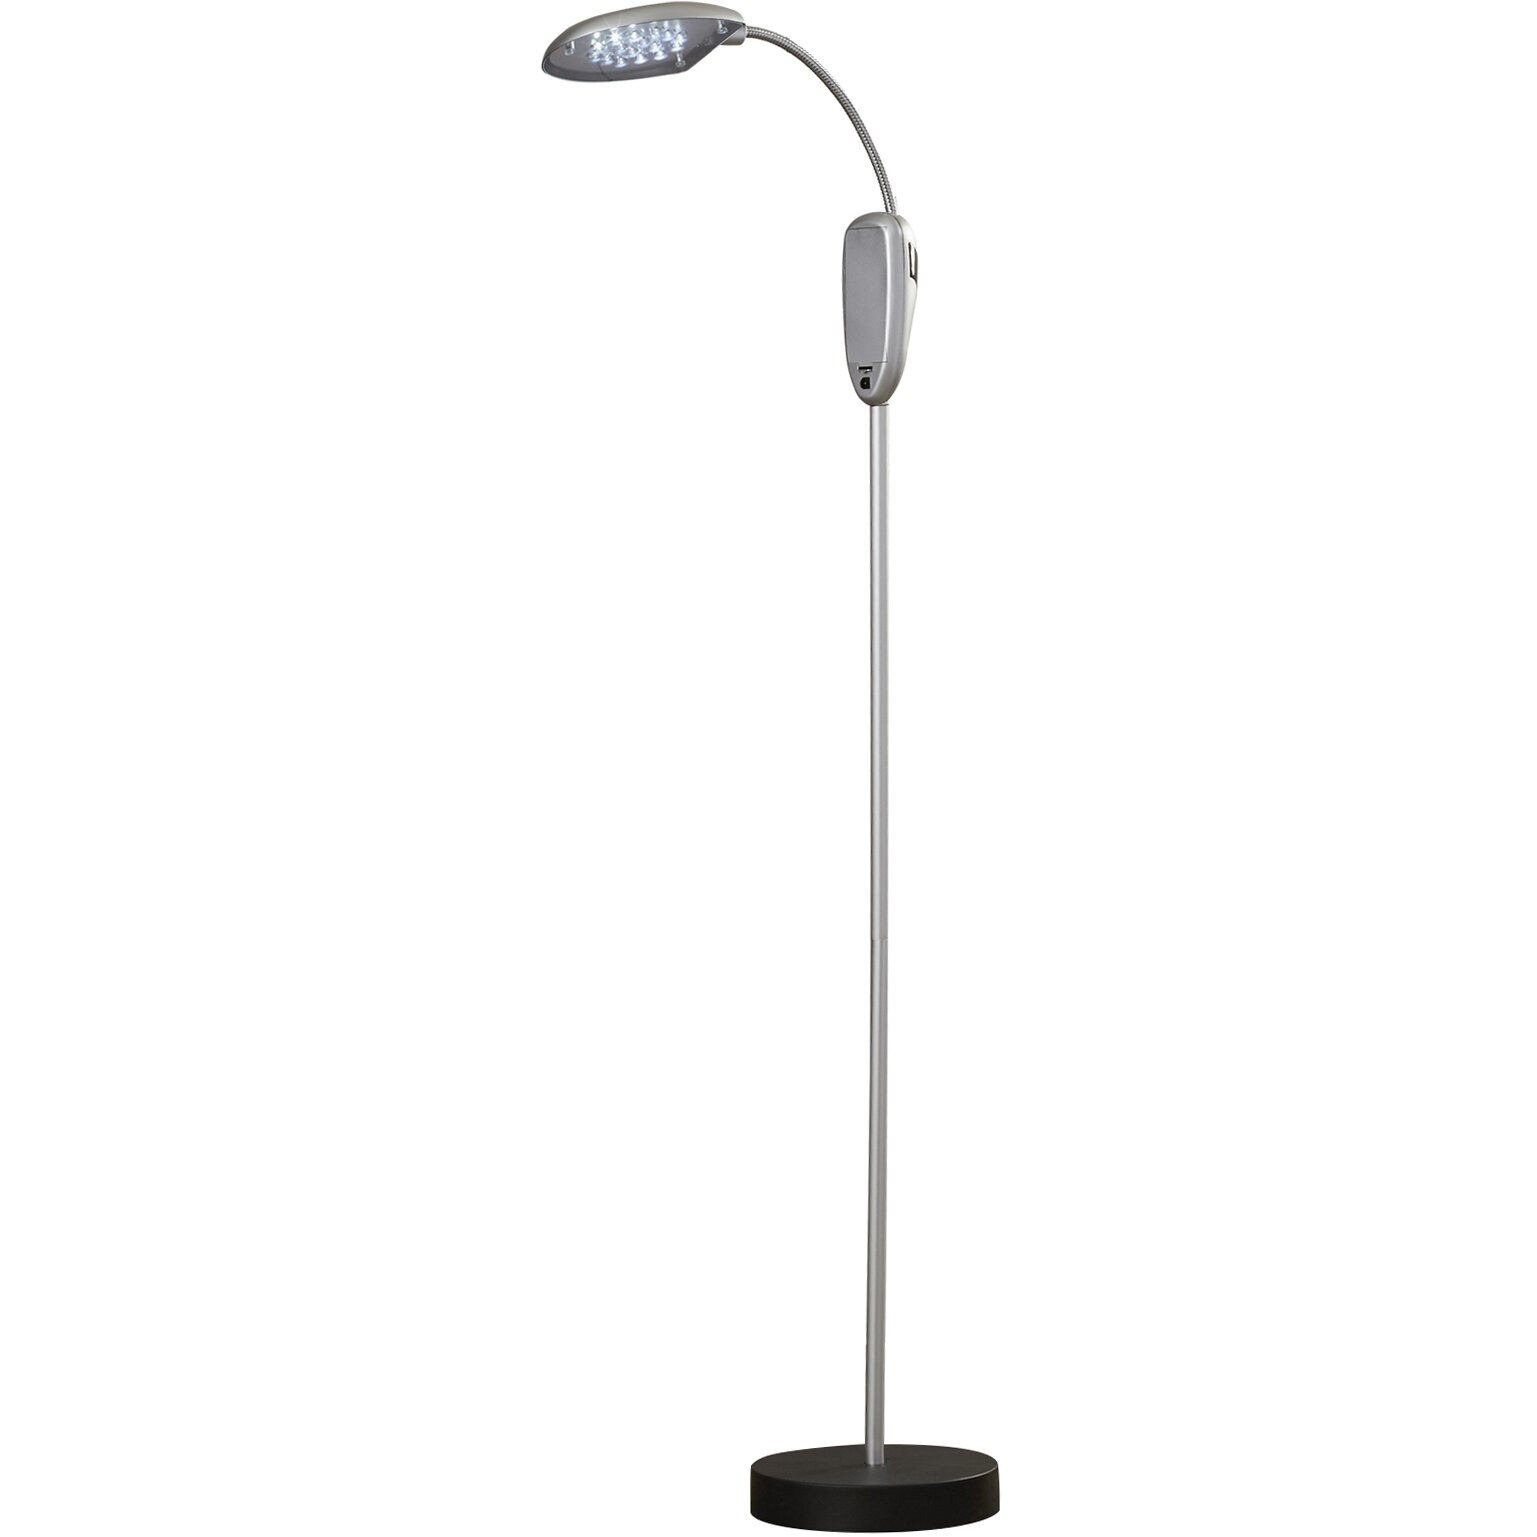 Trademark global super bright cordless portable 52quot led for Cordless led floor lamp review